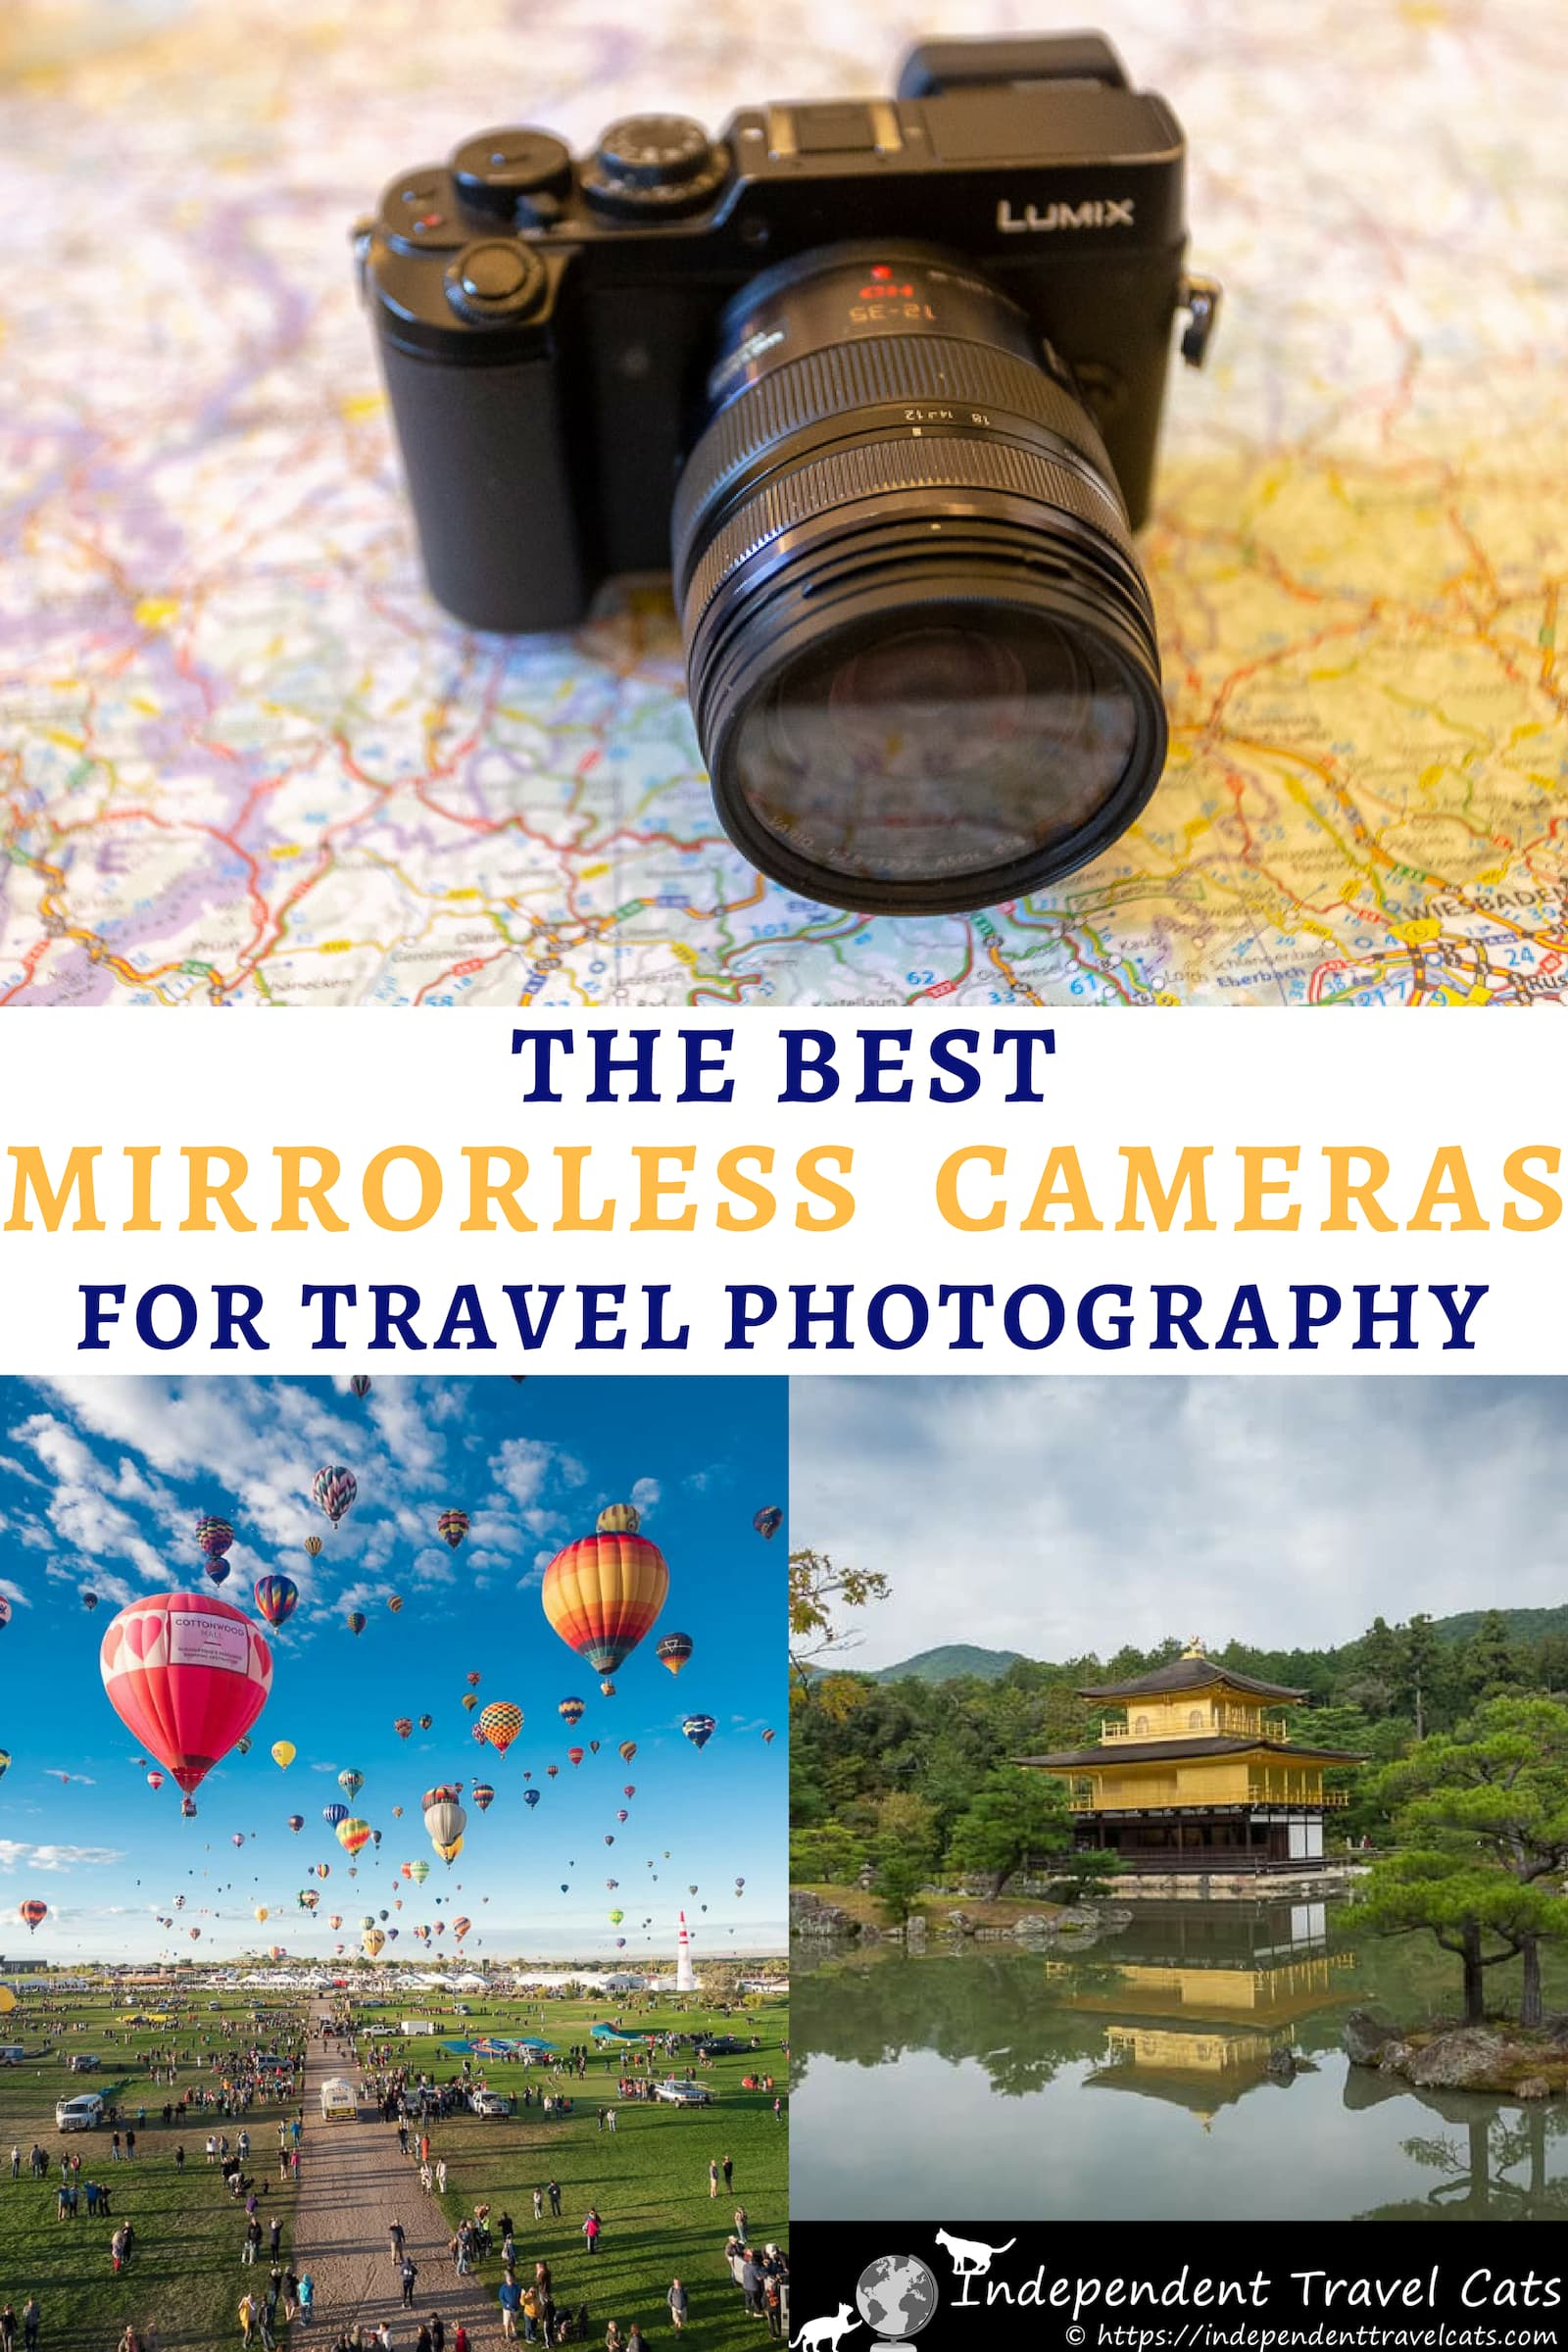 A guide to the best mirrorless cameras for travel at every price point. We'll help you decide if a mirrorless camera is a good choice for you, provide advice on how to choose the best mirrorless camera, and share a list of the best mirrorless cameras currently available across various price points. We also give some tips on how to make the most of your camera. #travelcamera #travelphotography #travel #mirrorlesscamera #mirrorlesscameras #photography #cameras